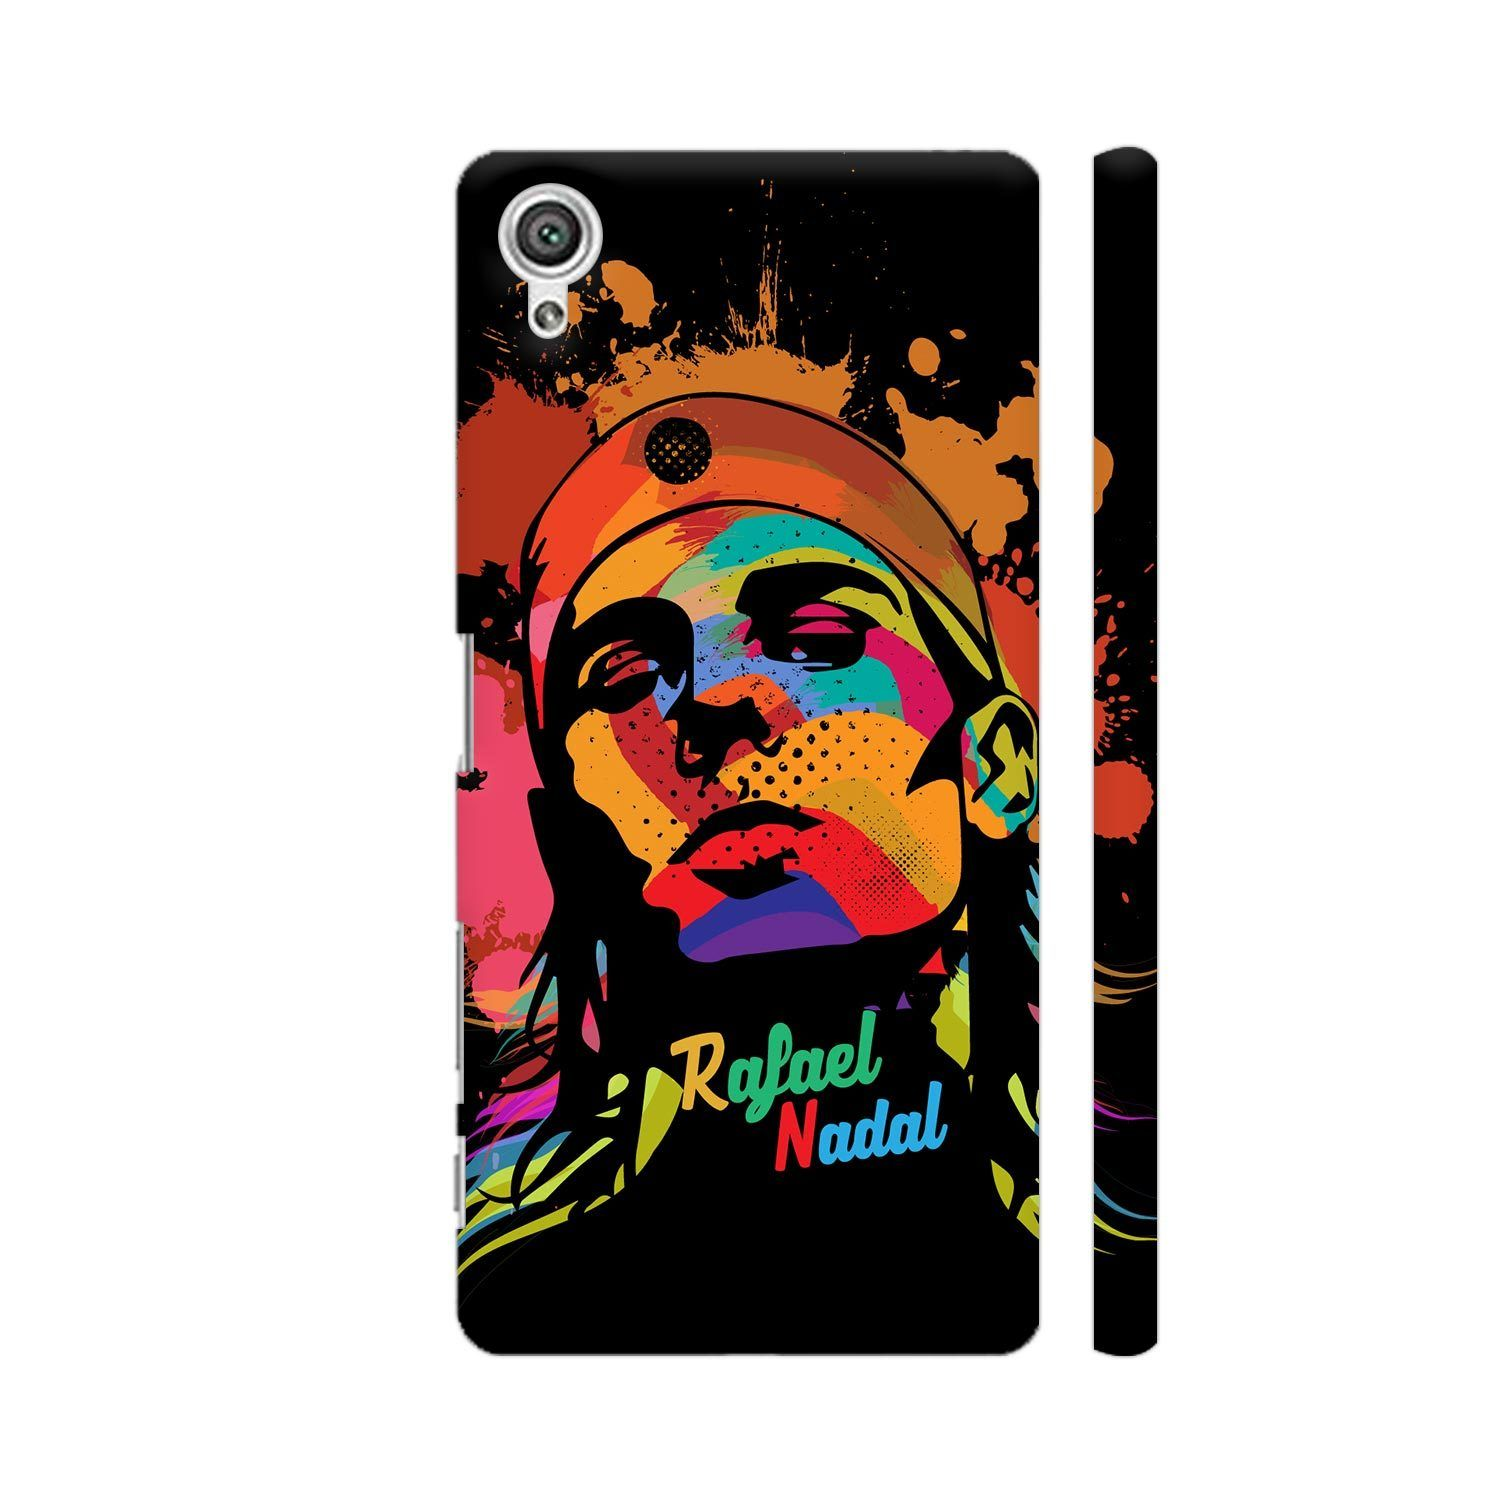 Rafael Nadal Painting On Black Sony Xperia X Cover